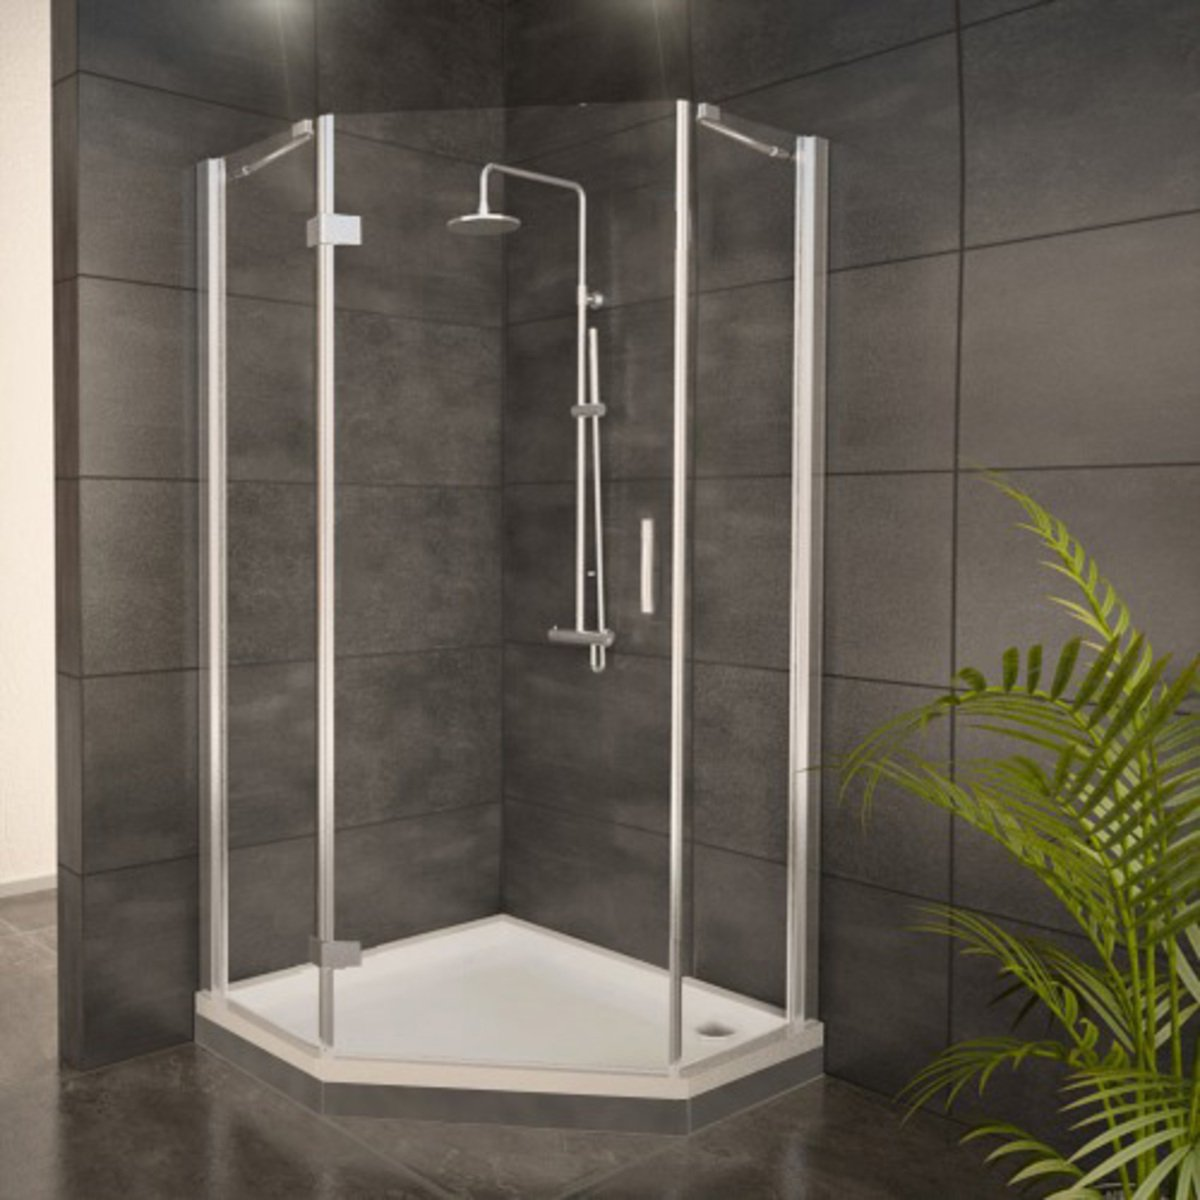 adema glass cabine de douche pentagone avec 1 porte. Black Bedroom Furniture Sets. Home Design Ideas